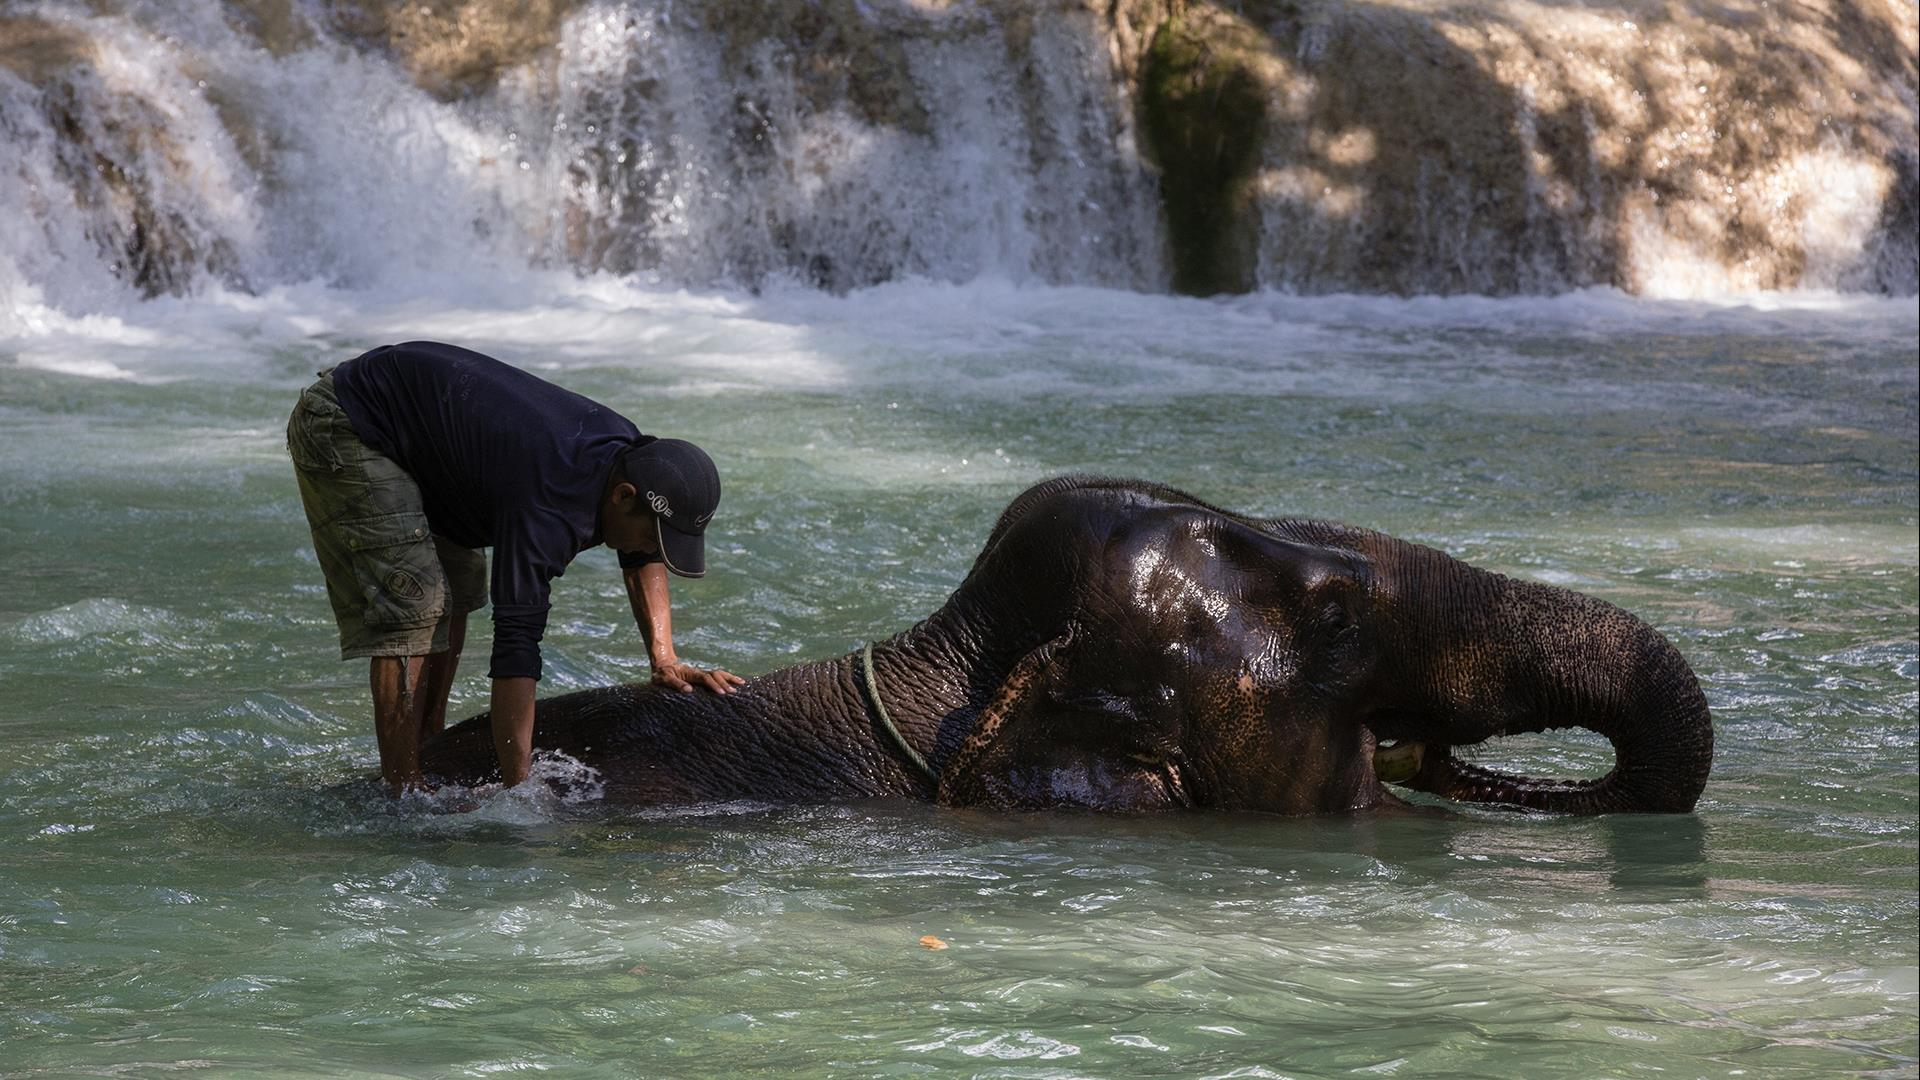 Laos, Luang Prabang : Deluxe Elephant Riding, Bathing, and Mahout Experience - 1 Day | Nature and Elephants